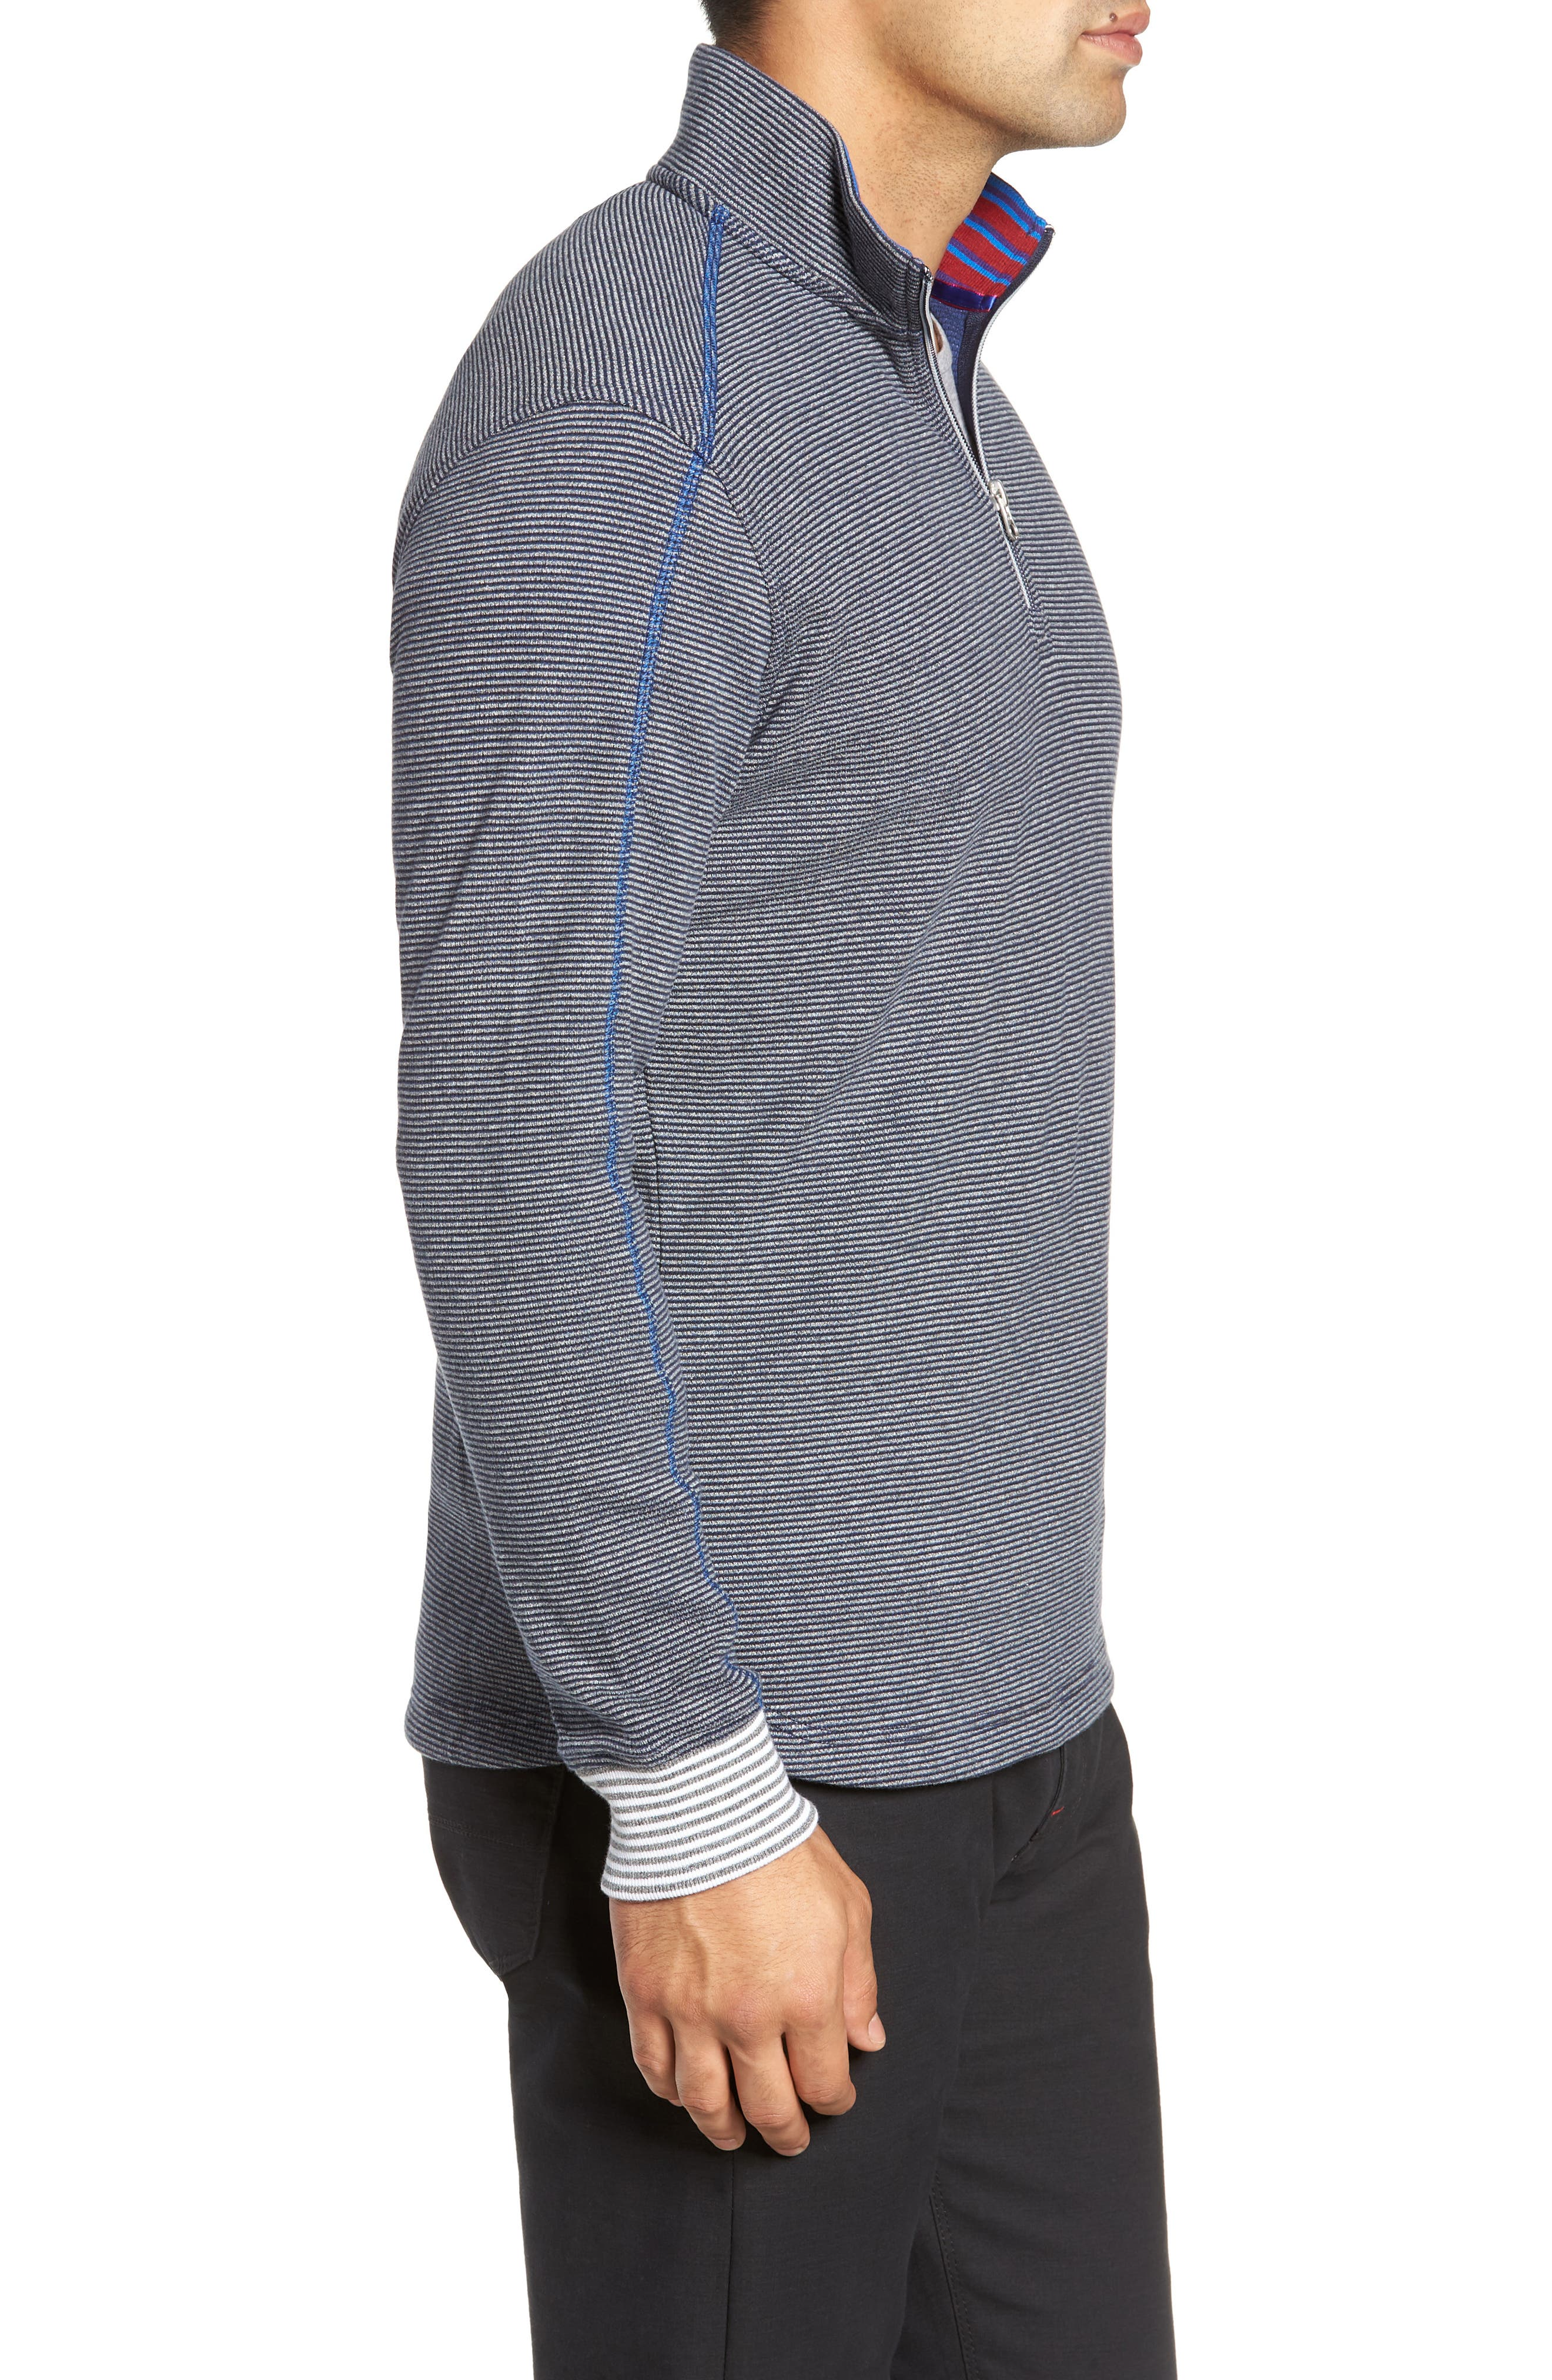 Kitson Classic Fit Stripe Quarter Zip Sweater,                             Alternate thumbnail 3, color,                             HEATHER NAVY